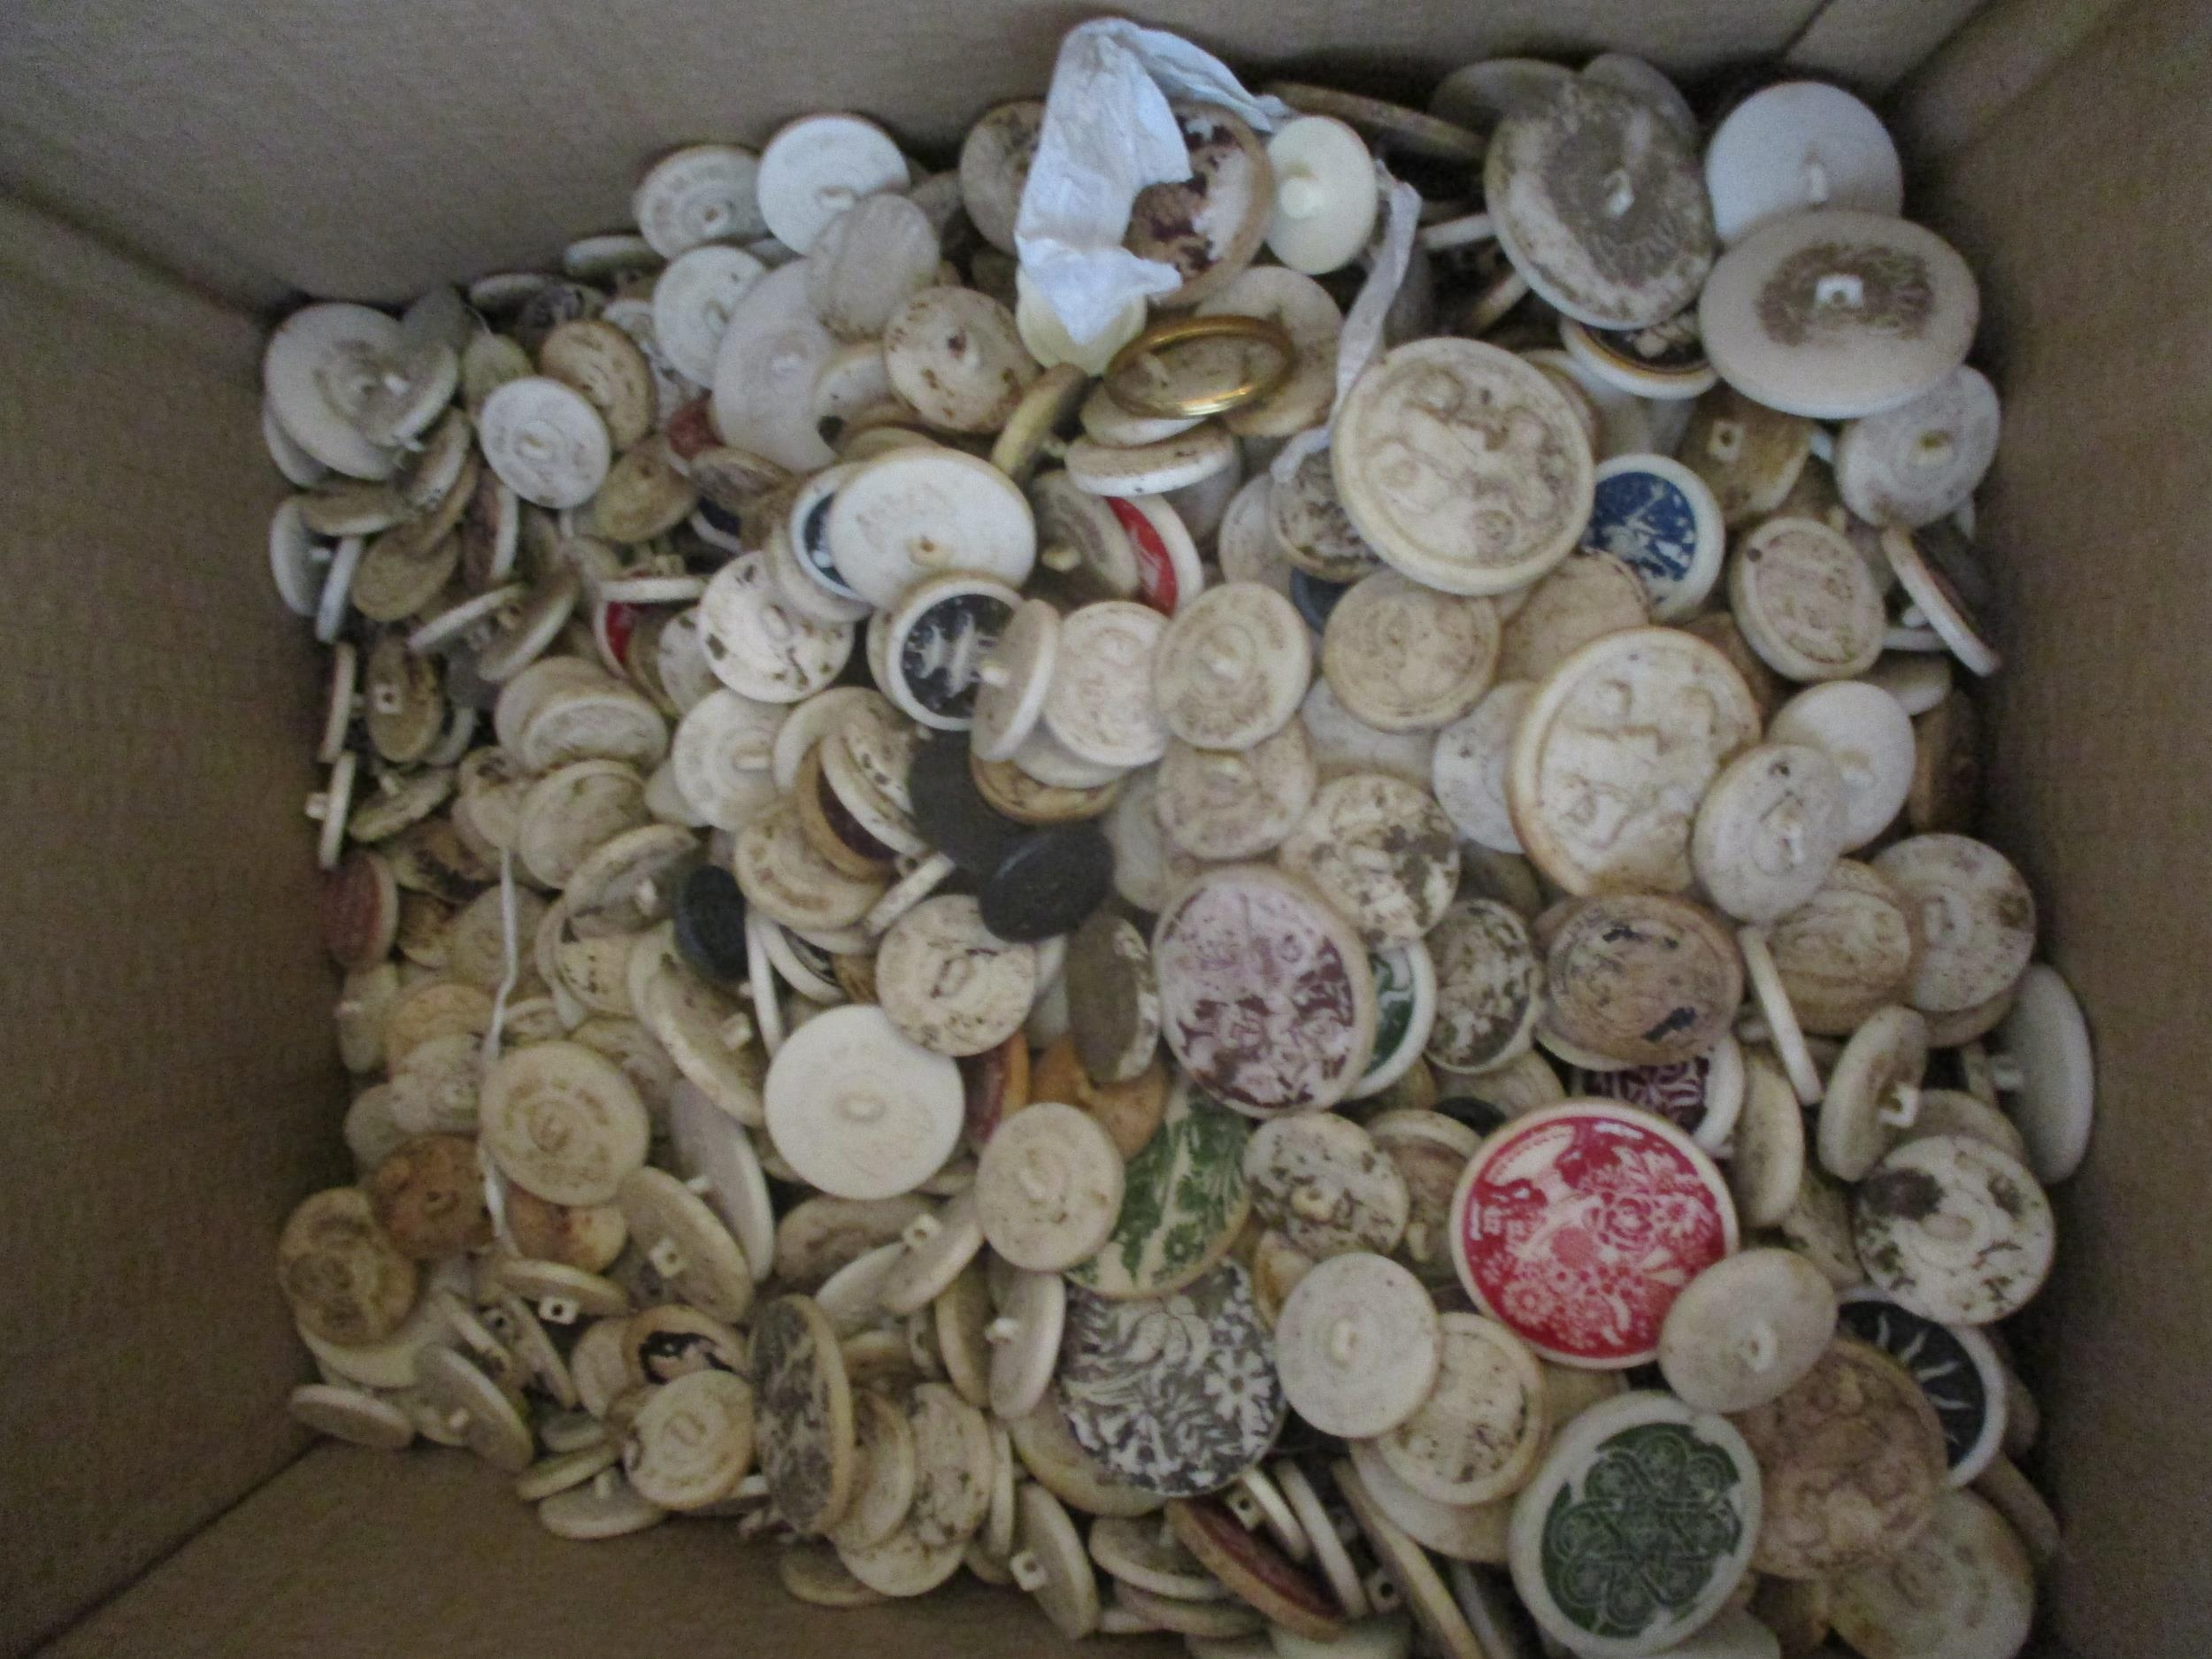 A large quantity of imperfect 1940s Artid buttons A/F, to include 'Fido the Dog', '19th century lady - Image 2 of 6